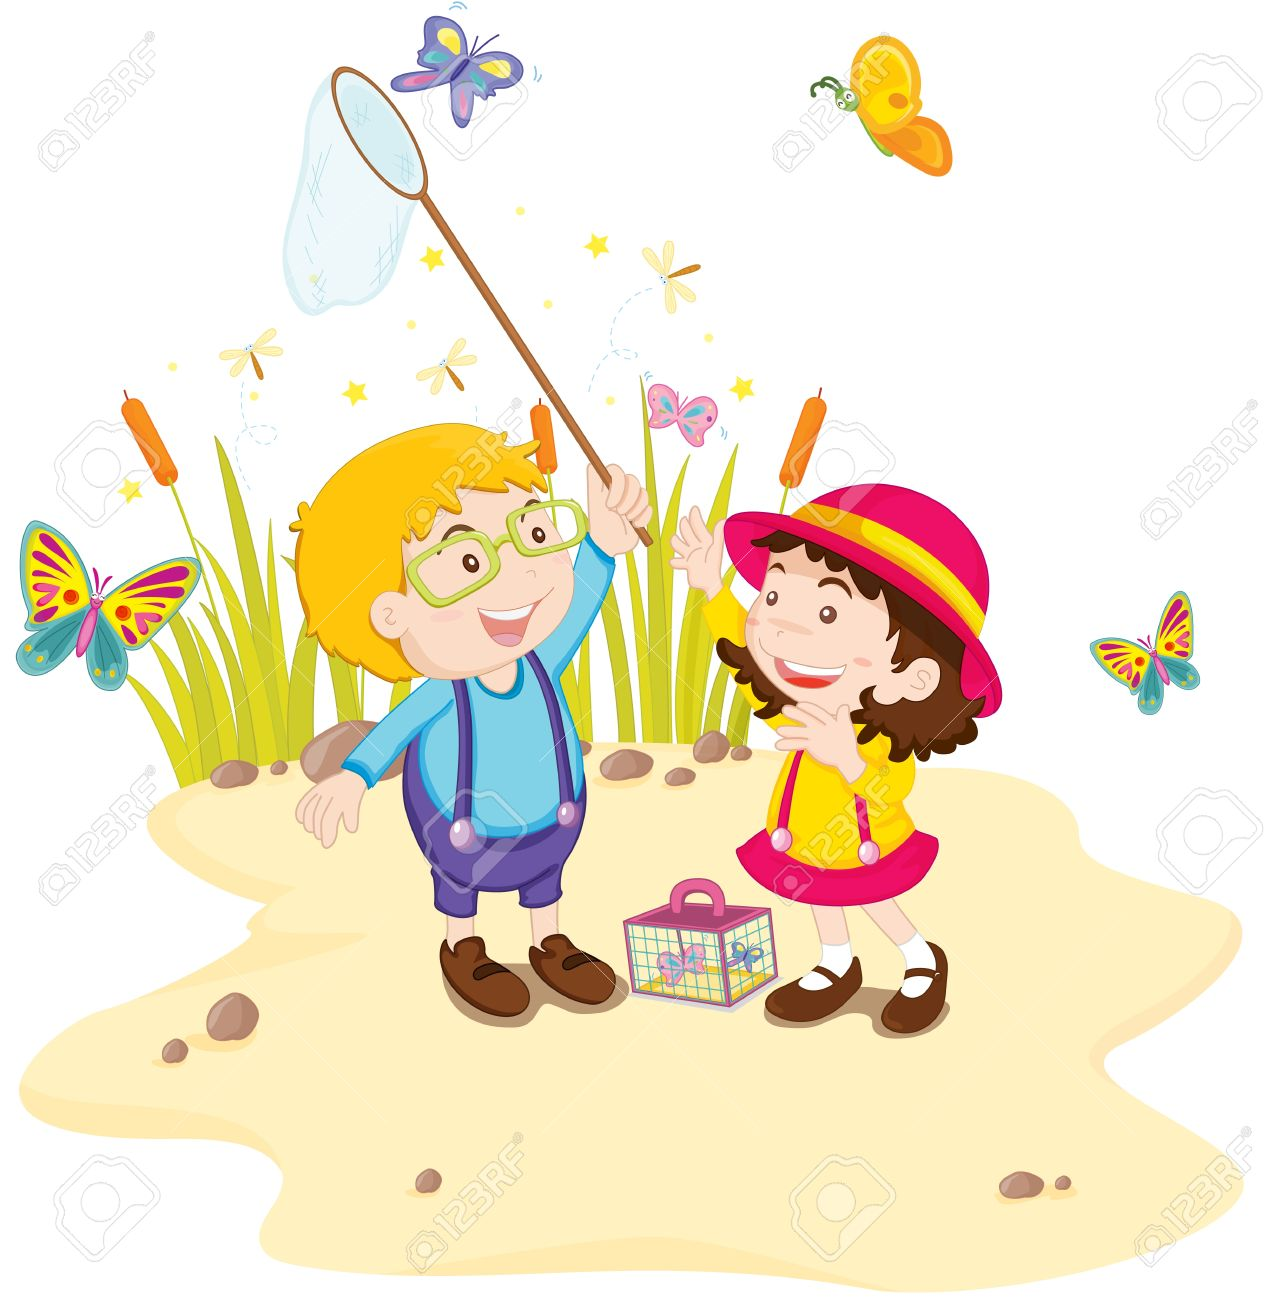 A pair of children catching butterflies Stock Vector - 13215989